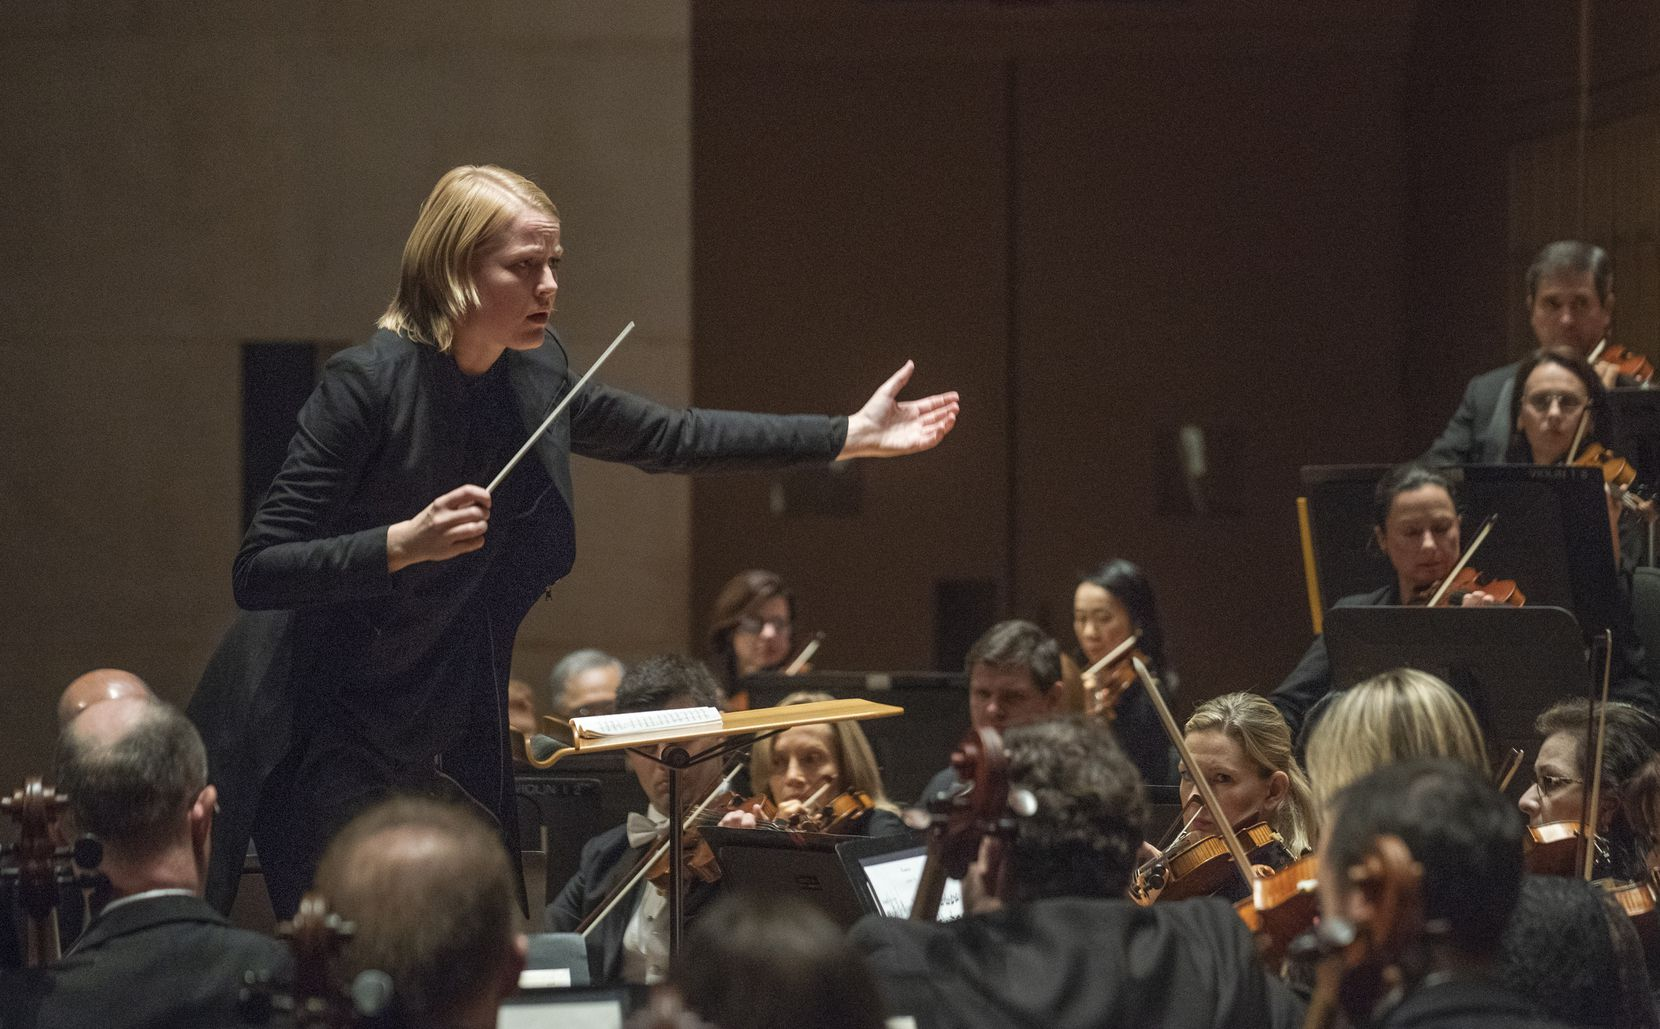 """Ruth Reinhardt conducts the Dallas Symphony Orchestra as they perform Paul Hindemith's """"Concert Music for Strings and Brass, Op. 50"""" in 2018."""